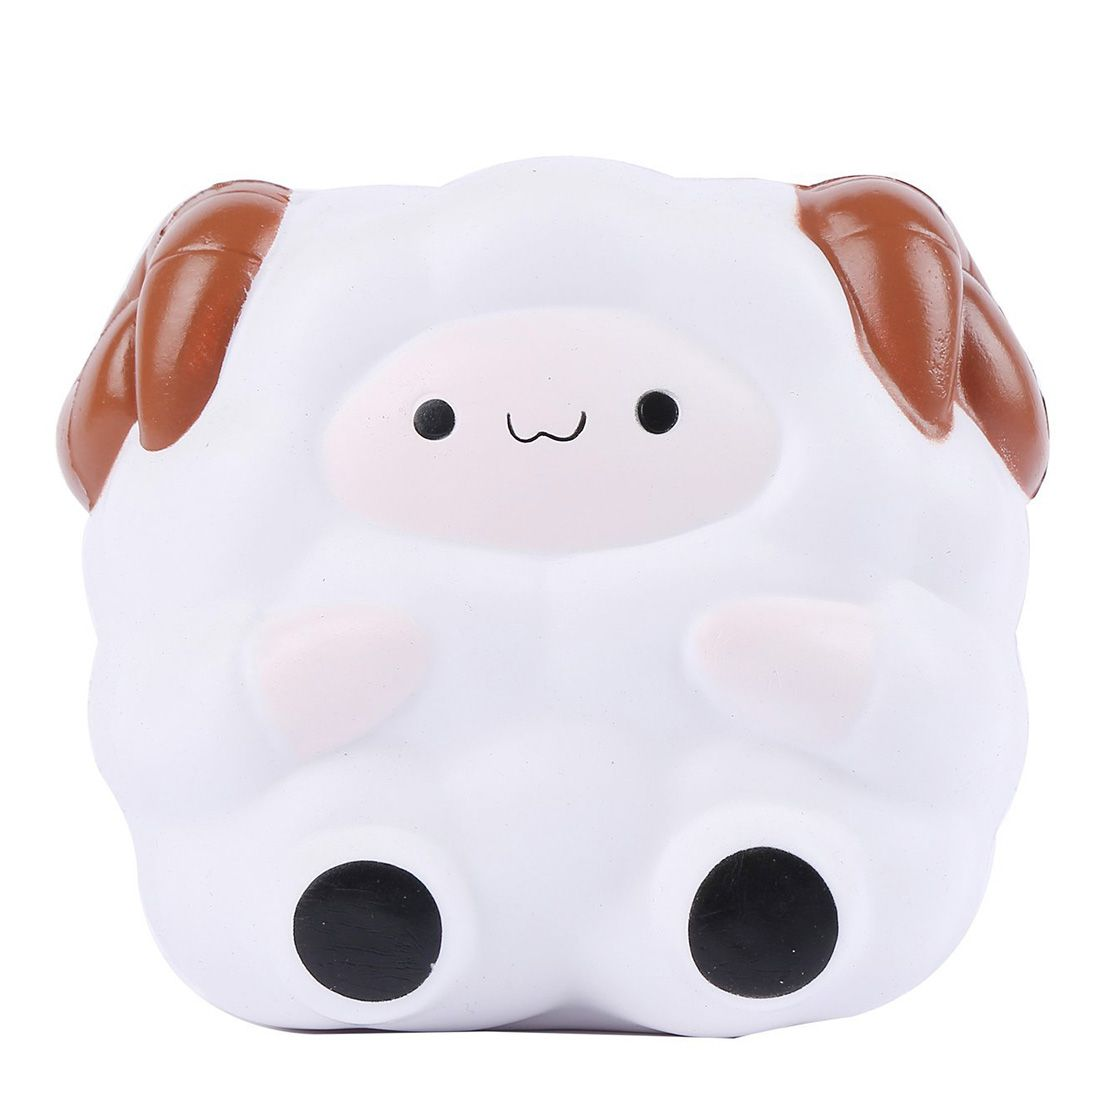 Jumbo 13.5CM Cartoon Big Sheep Squishy Slow Rising Squeeze Stress Reliever Toy Phone Strap DIY Decor Birthday Christmas Gift P15